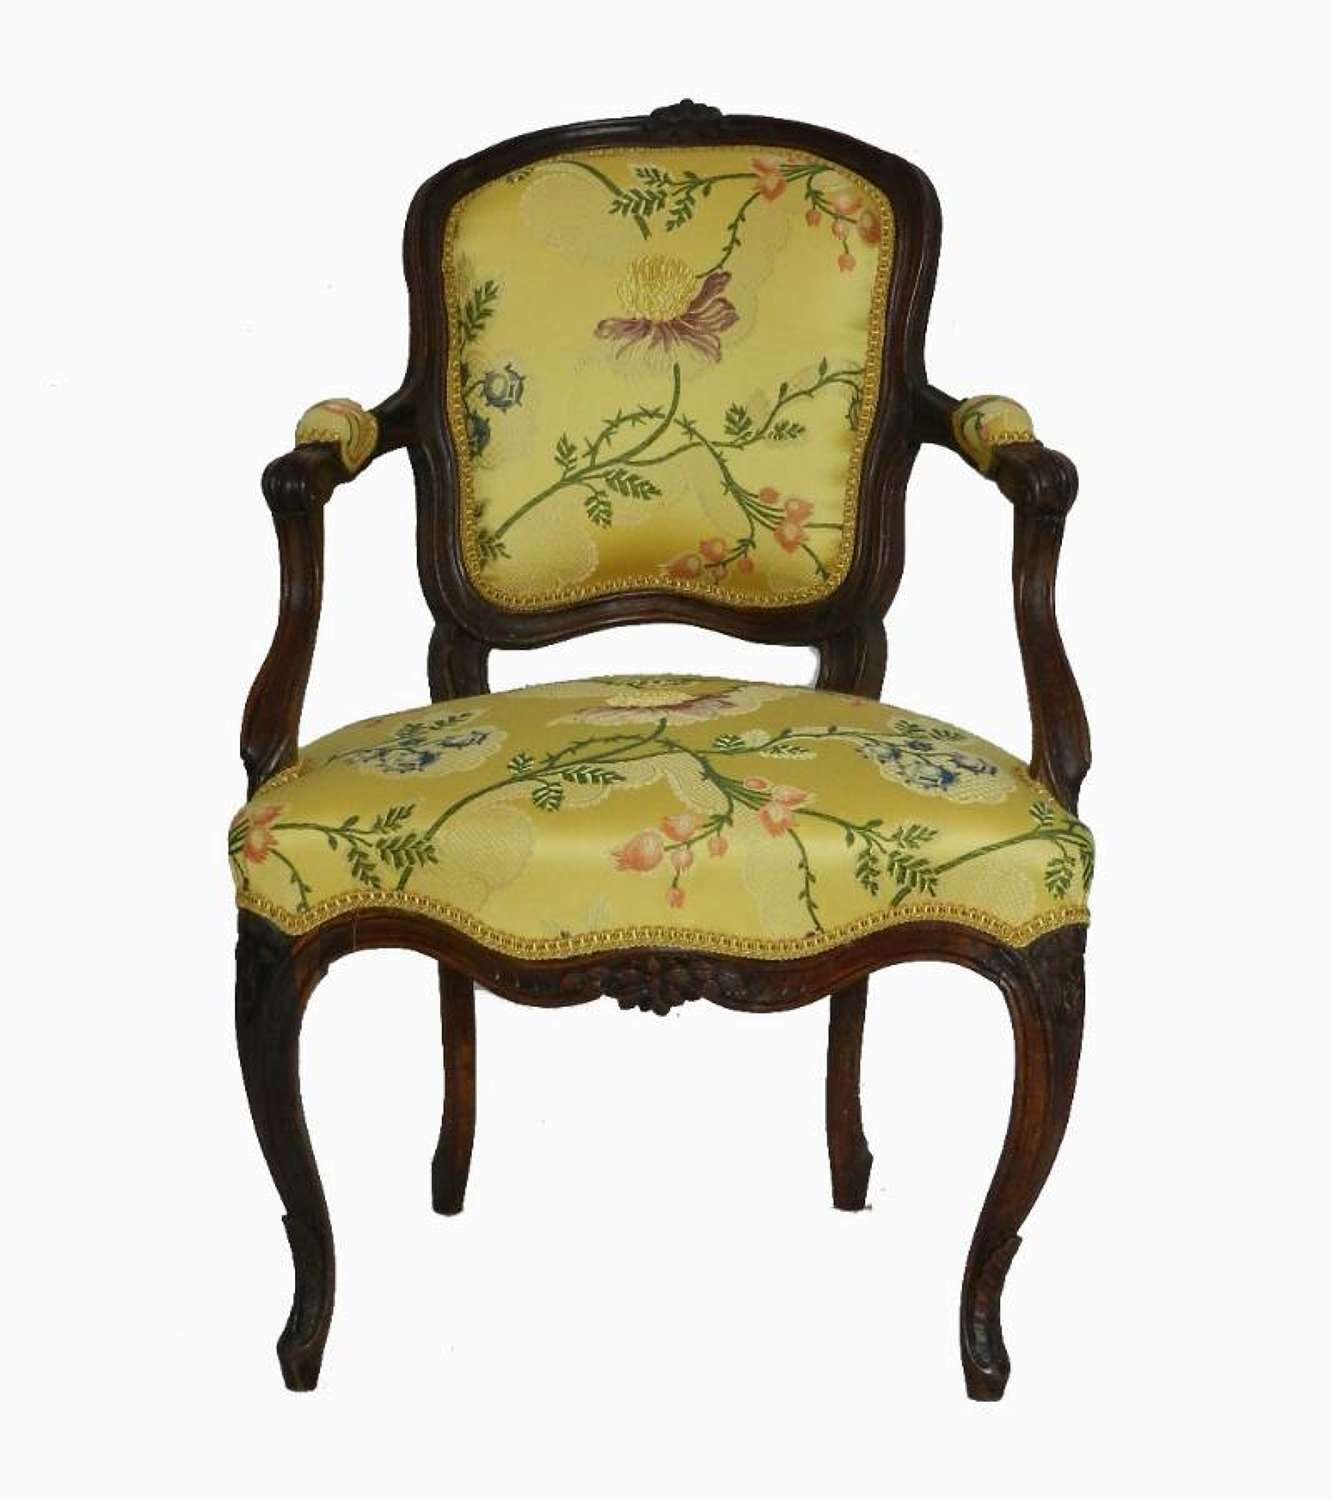 Rare C18 French Louis XV Diminutive Chair Childs open Armchair Epoque